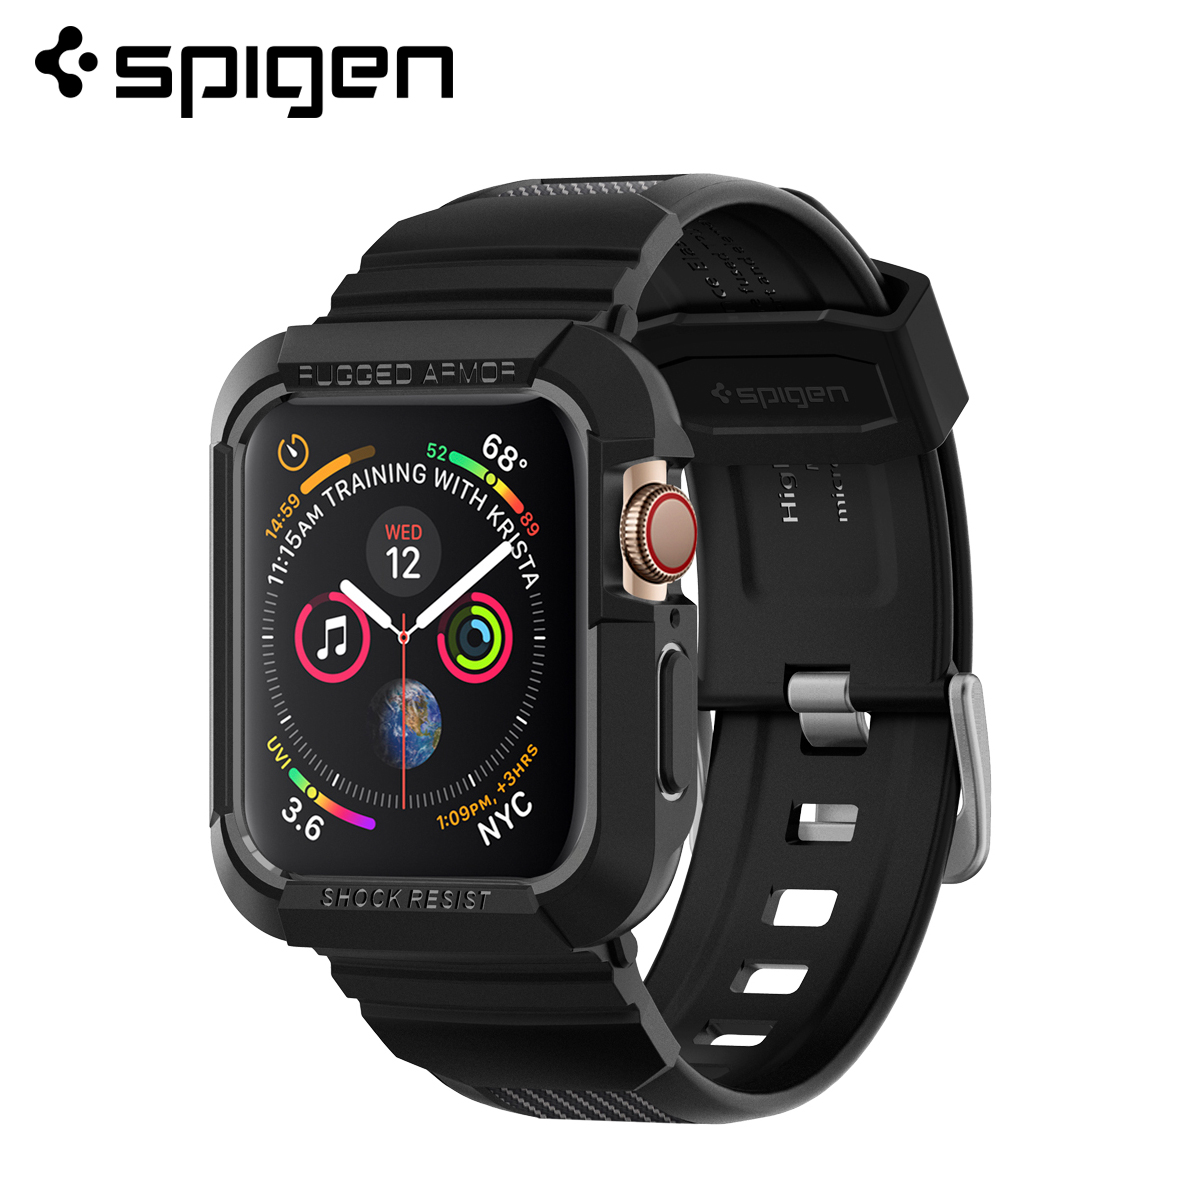 Spigen Rugged Armor Pro For Apple Watch Series 5 / 4  (44mm) - Flexible Soft TPU Matte Black Protective Cases